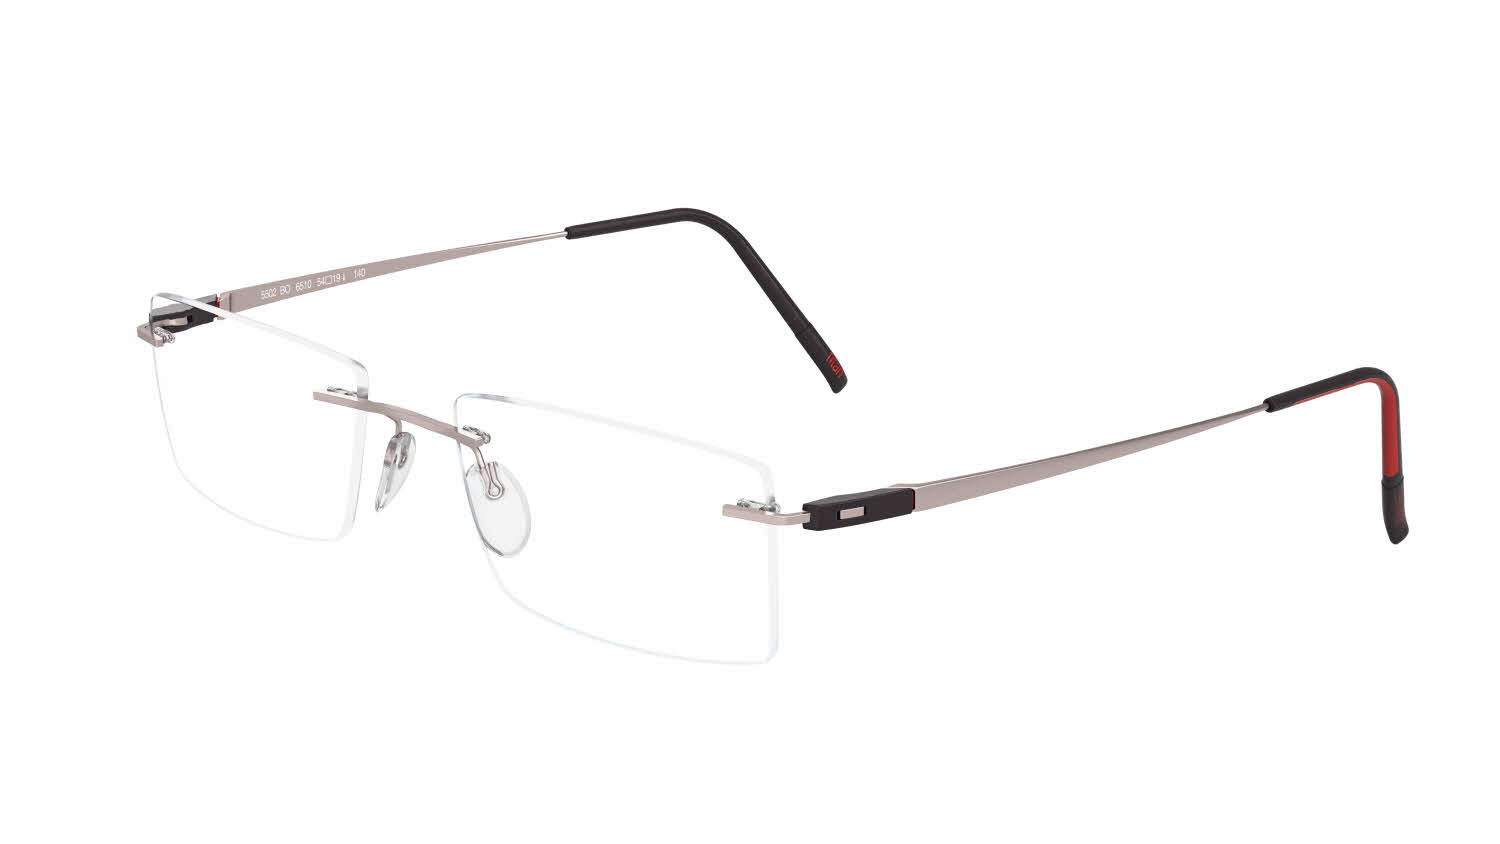 494caefe8eb83 Silhouette Rimless 5502 Racing Collection Eyeglasses